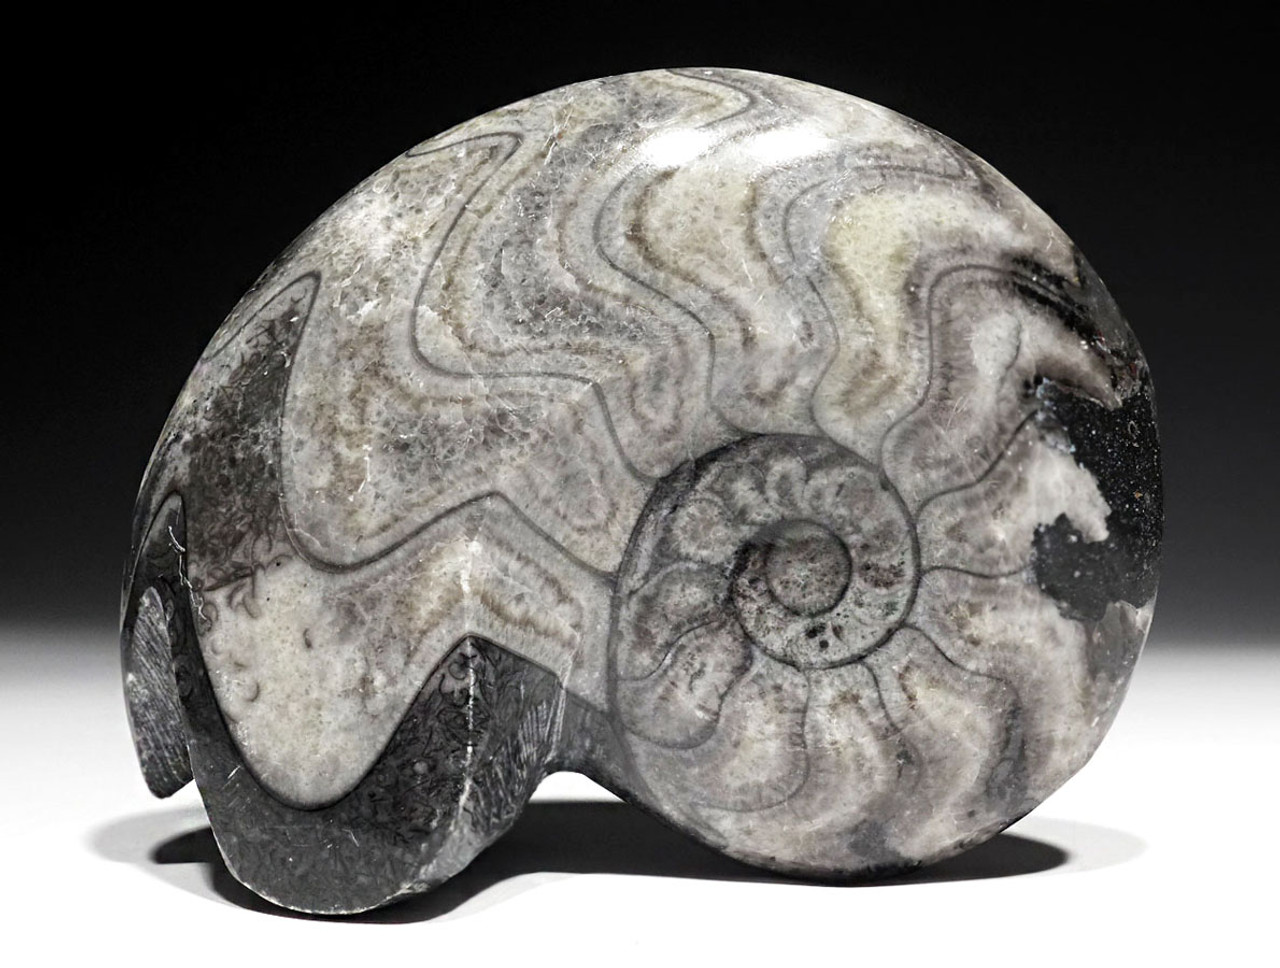 NICE POLISHED GONIATITE FOSSIL AMMONID FROM THE DEVONIAN  *AMXF1